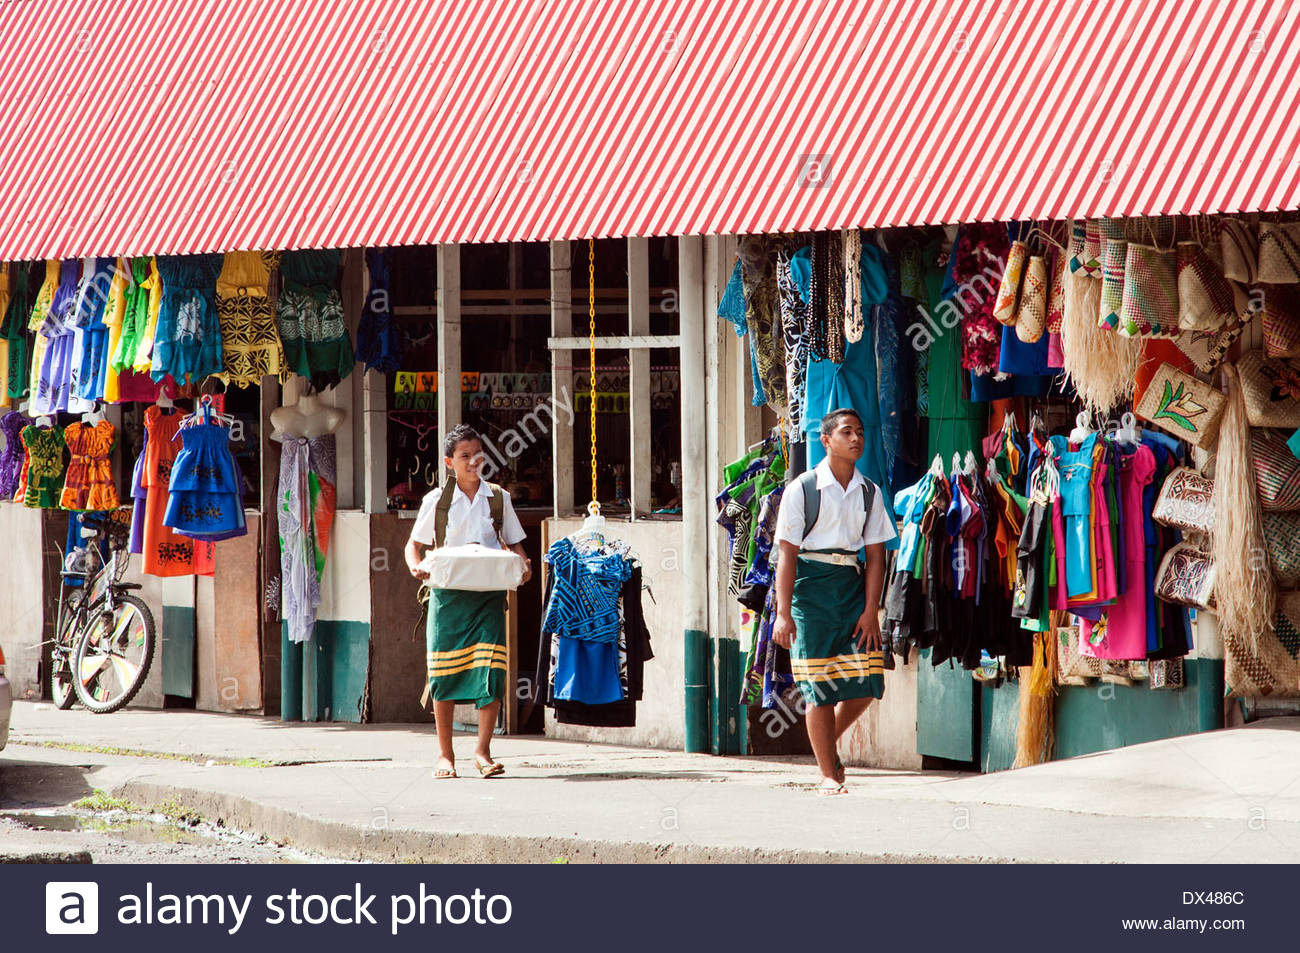 Flea Market Apia, flea market, town Center, Apia, Samoa Stock Photo, Royalty Free ...